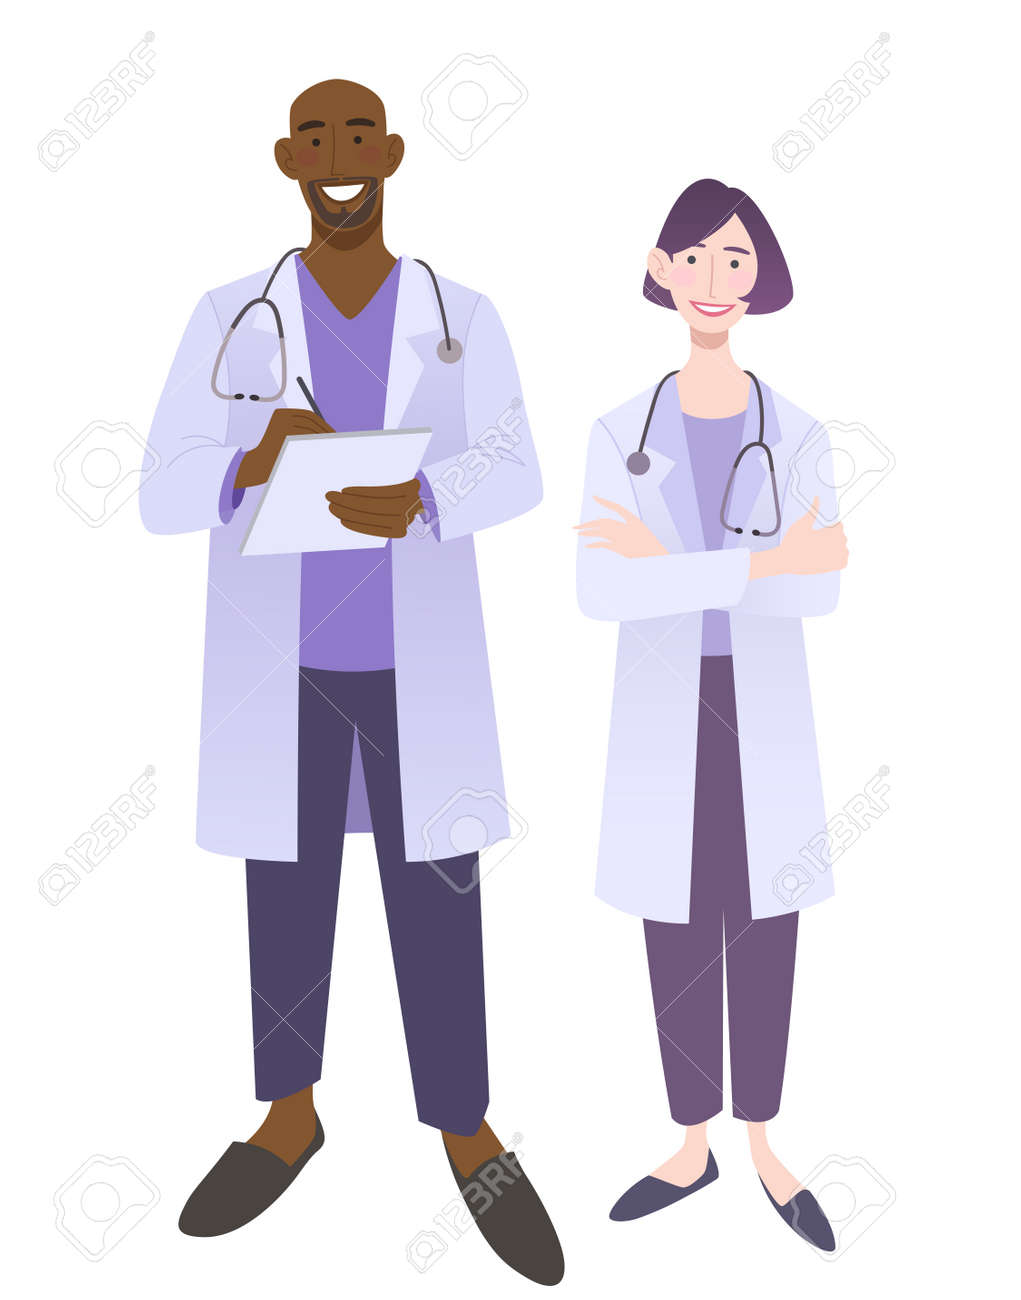 Friendly doctors in medical uniform. Smiling man and woman physicians. Friendly therapist and nurse. Isolated on white vector illustration. - 164624864